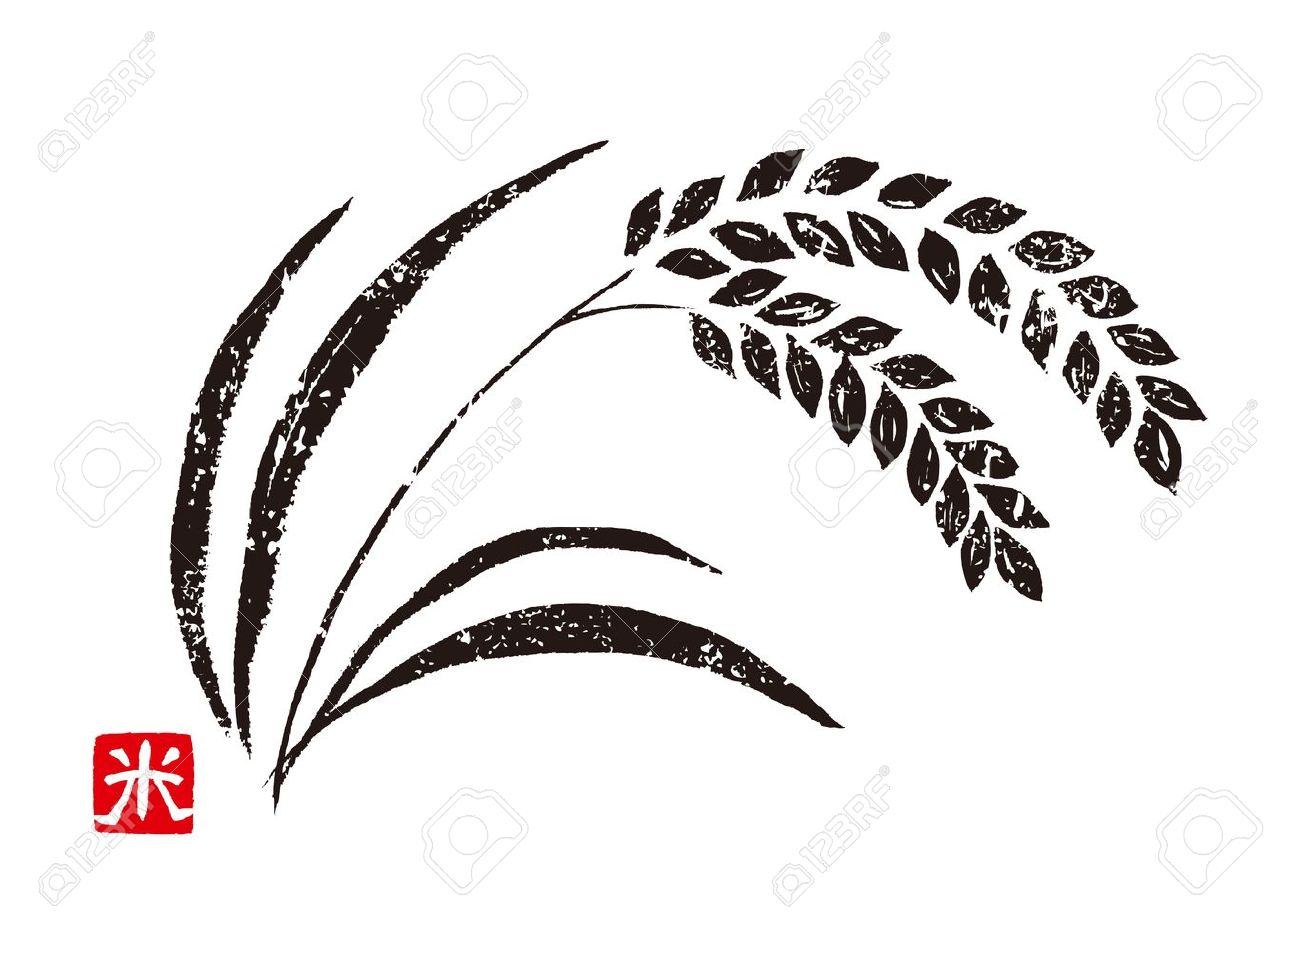 hight resolution of 1300x975 rice clipart rice crop